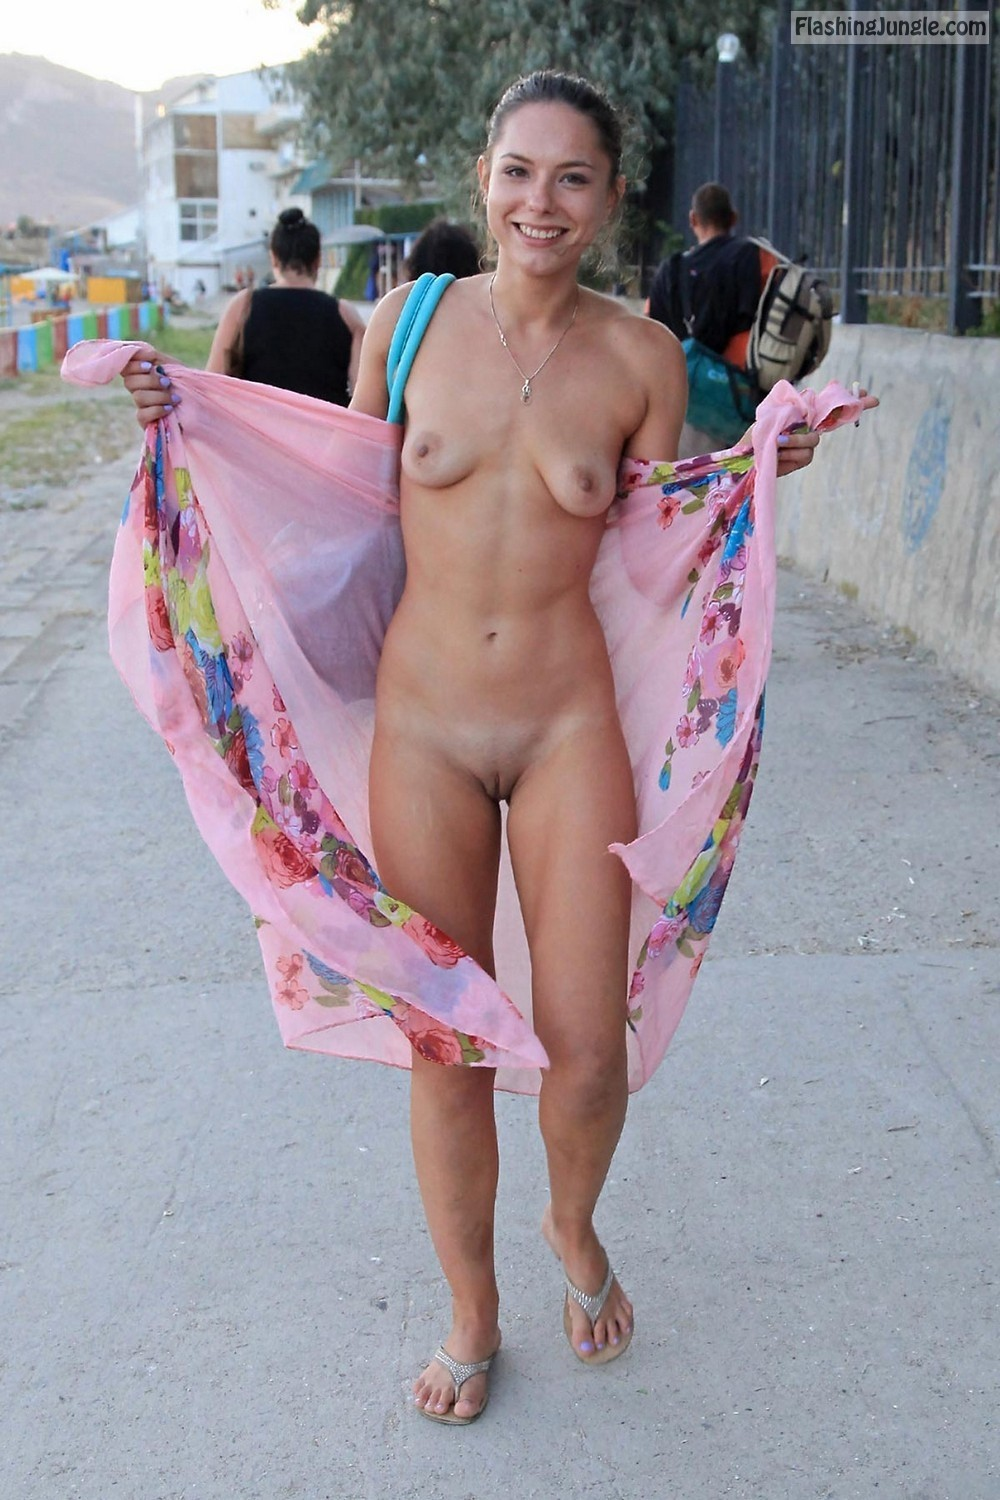 Pussy Flash Pics Public Flashing Pics No Panties Pics Boobs Flash Pics Bitch Flashing Pics